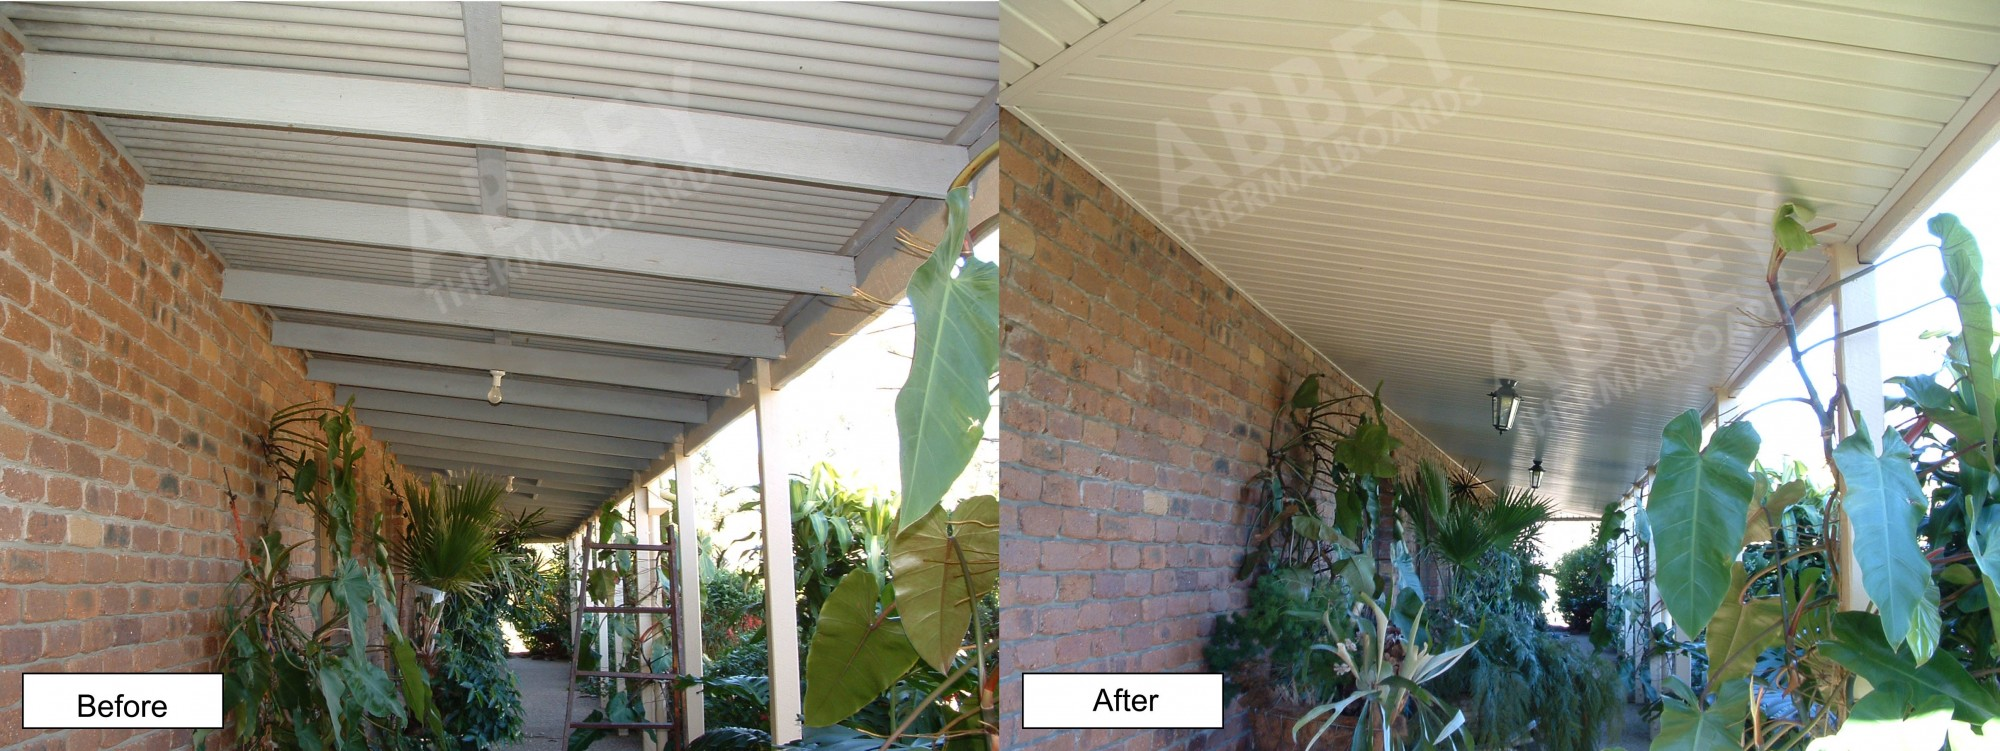 Vertical boards used in cladding showing a before and after the job perspective.